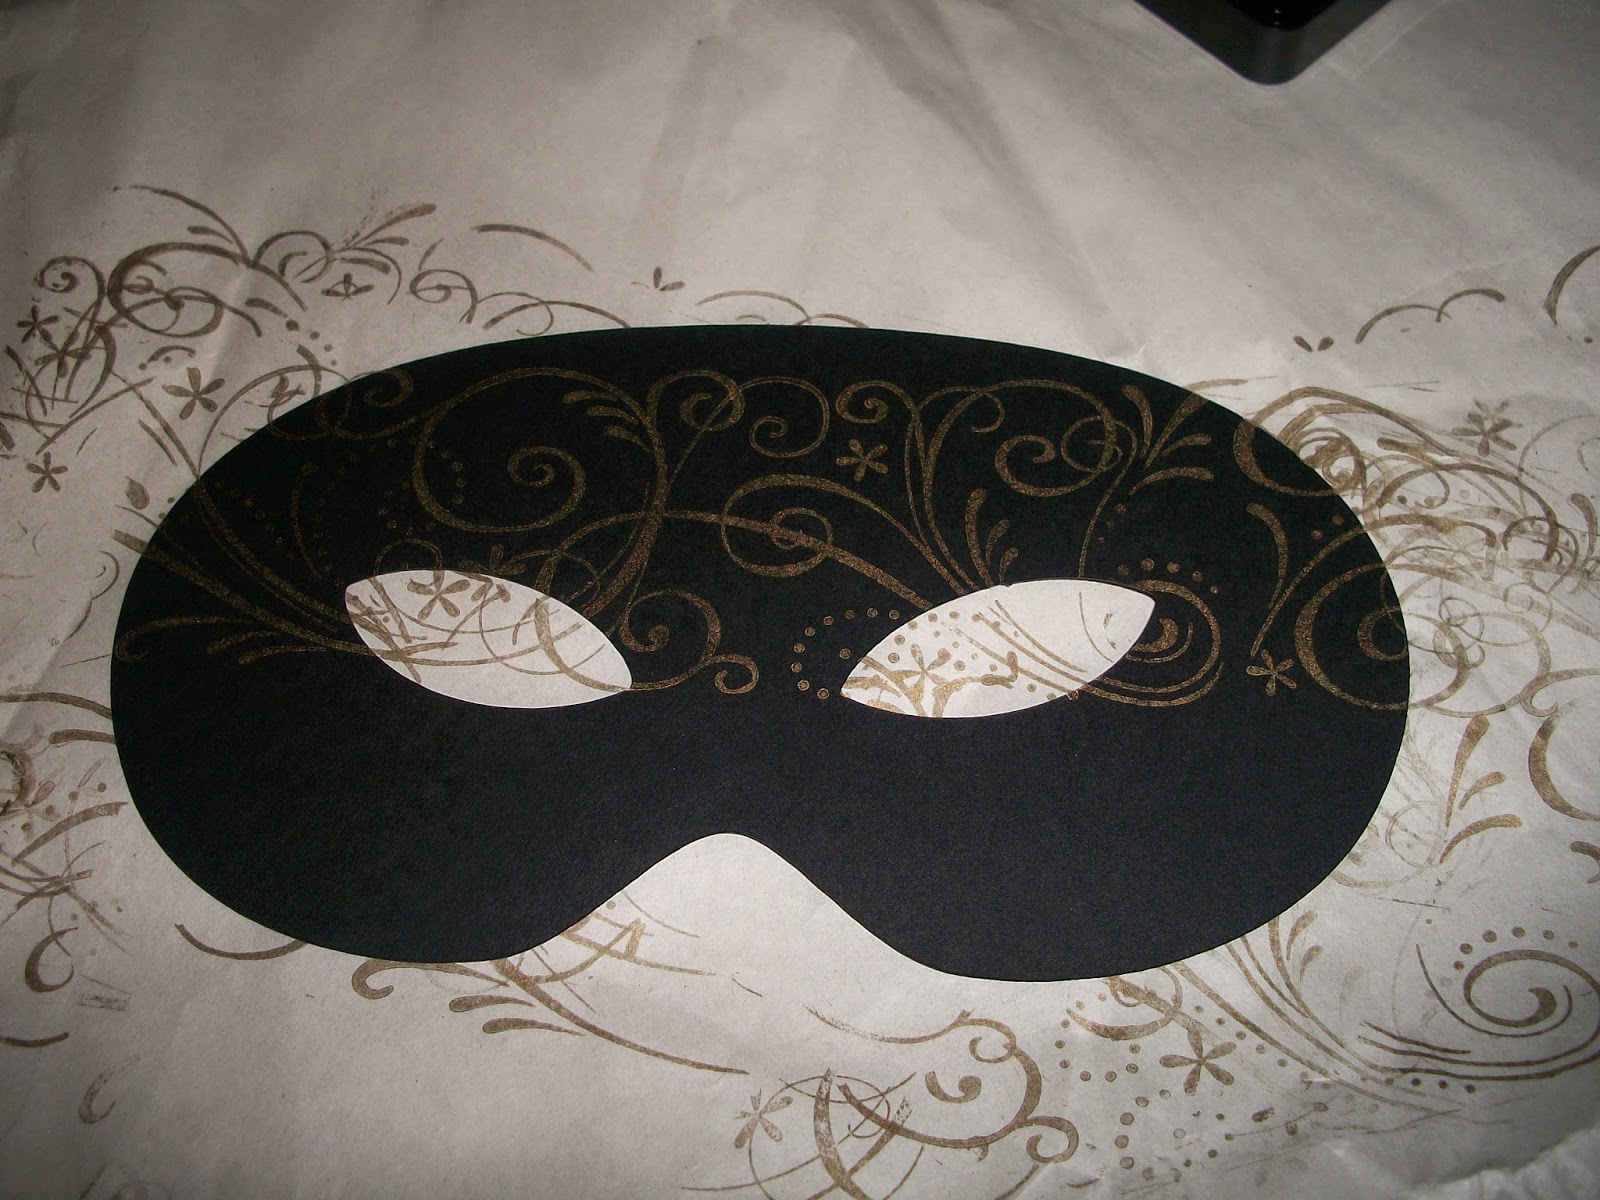 Use a roller stamp to print pattern on the paper mask